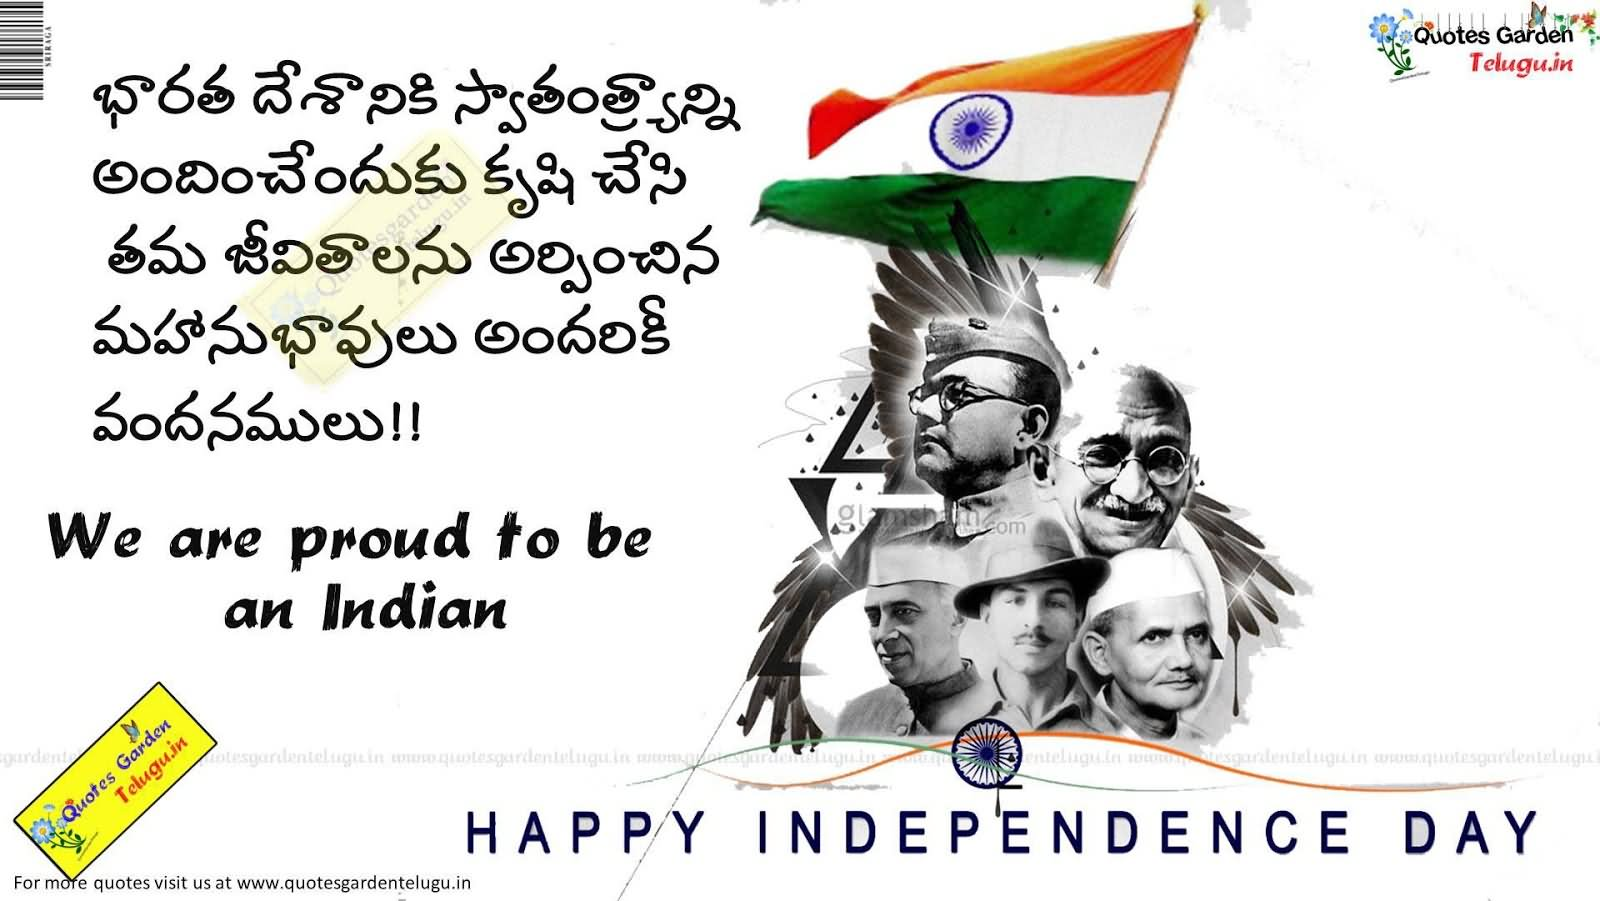 independence day of india in telugu Independence day speech & essay pdf for students, teachers & kids in hindi, gujarati, kannada, marathi, urdu & malayalam for 15th august 2017.